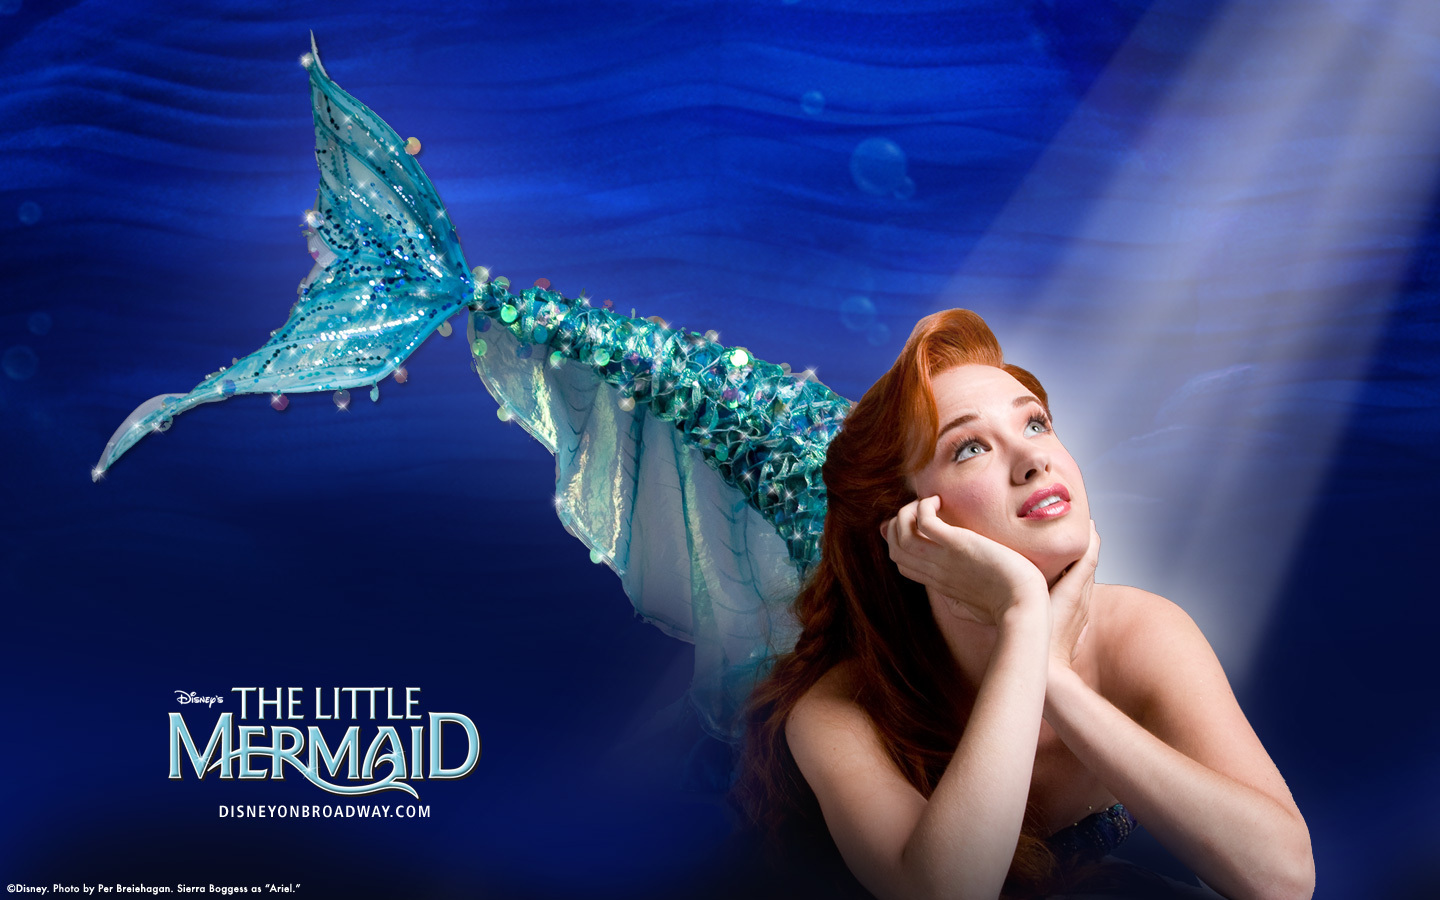 http://3.bp.blogspot.com/-XqSHbvOn-rQ/T3llWCv3SEI/AAAAAAAAAHo/cR6smcFQXEk/s1600/The-Little-Mermaid-the-little-mermaid-on-broadway-12842273-1440-900.jpg